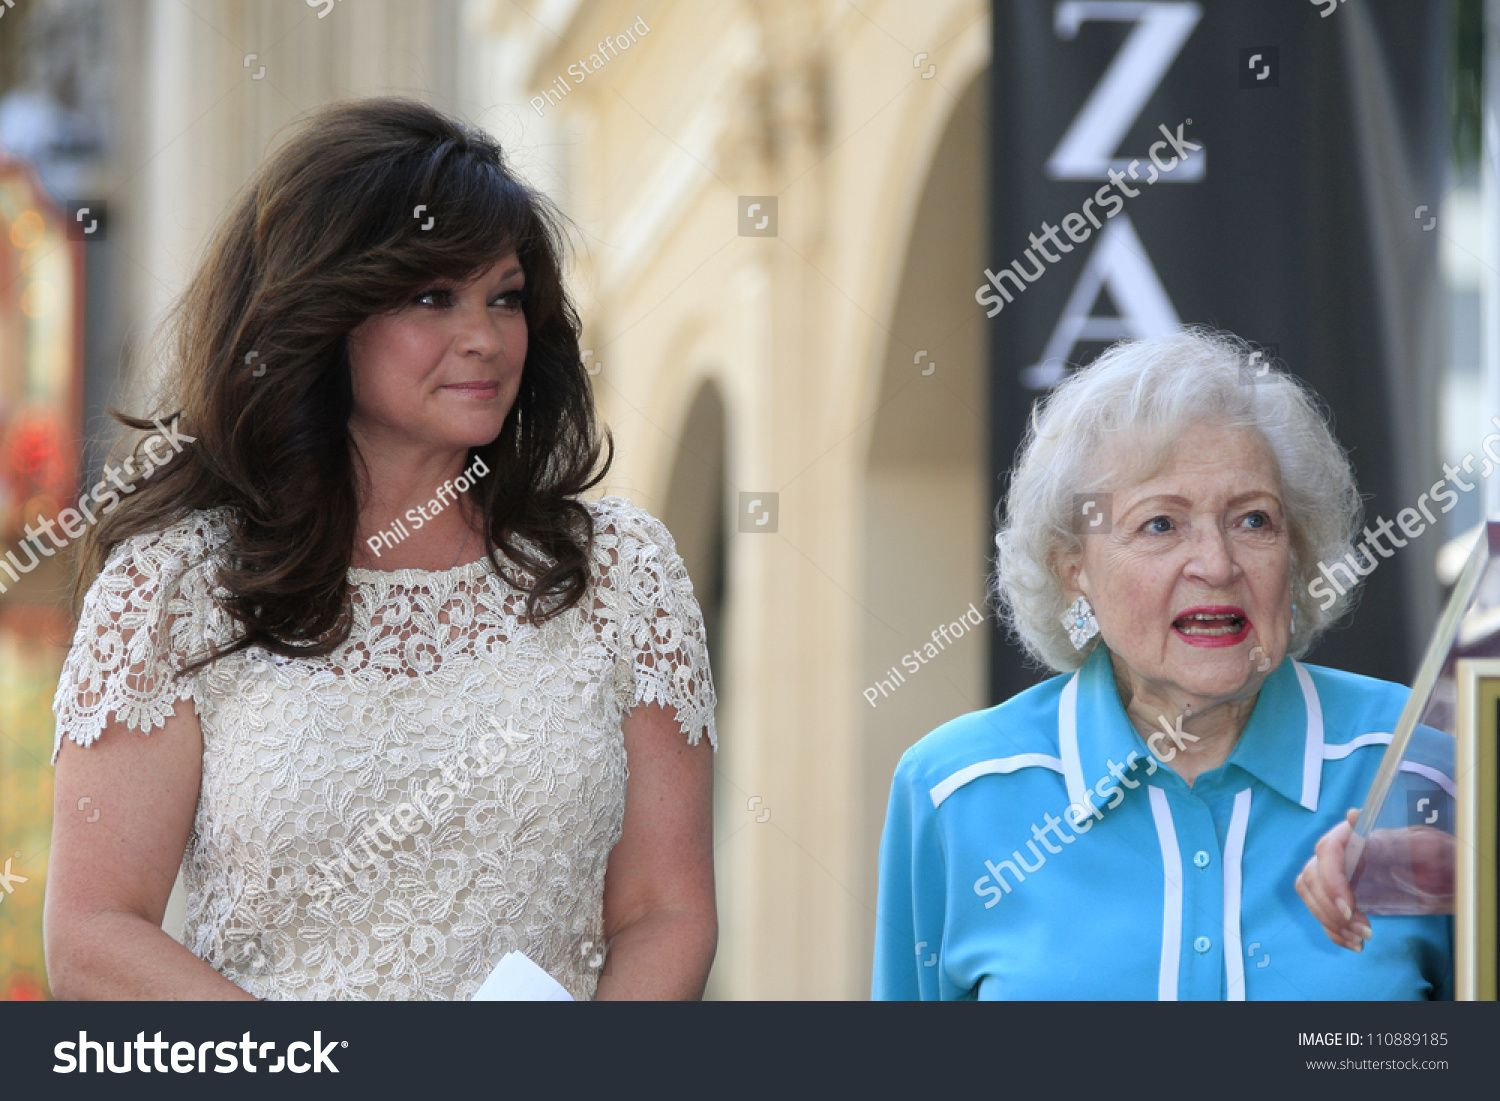 Los Angeles Aug 22 Valerie Bertinelli Betty White At A Ceremony Where Valerie Bertinelli Is Honored With A Sta Ad In 2020 Betty White Valerie Bertinelli Ceremony